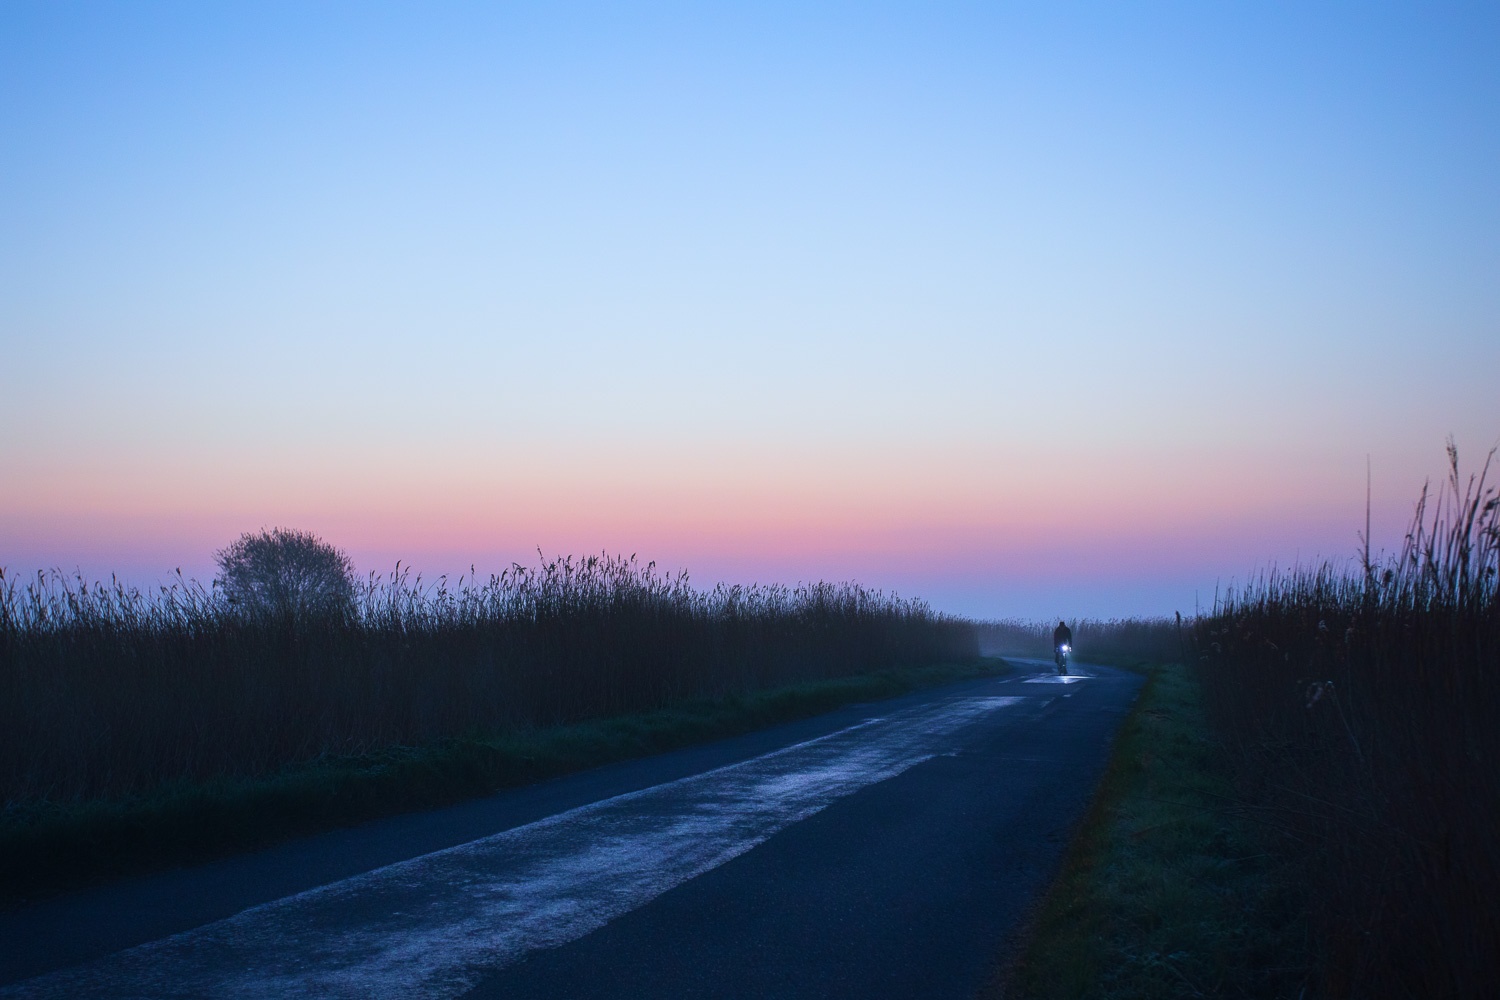 headlamp of cyclist on pretty country road at dawn